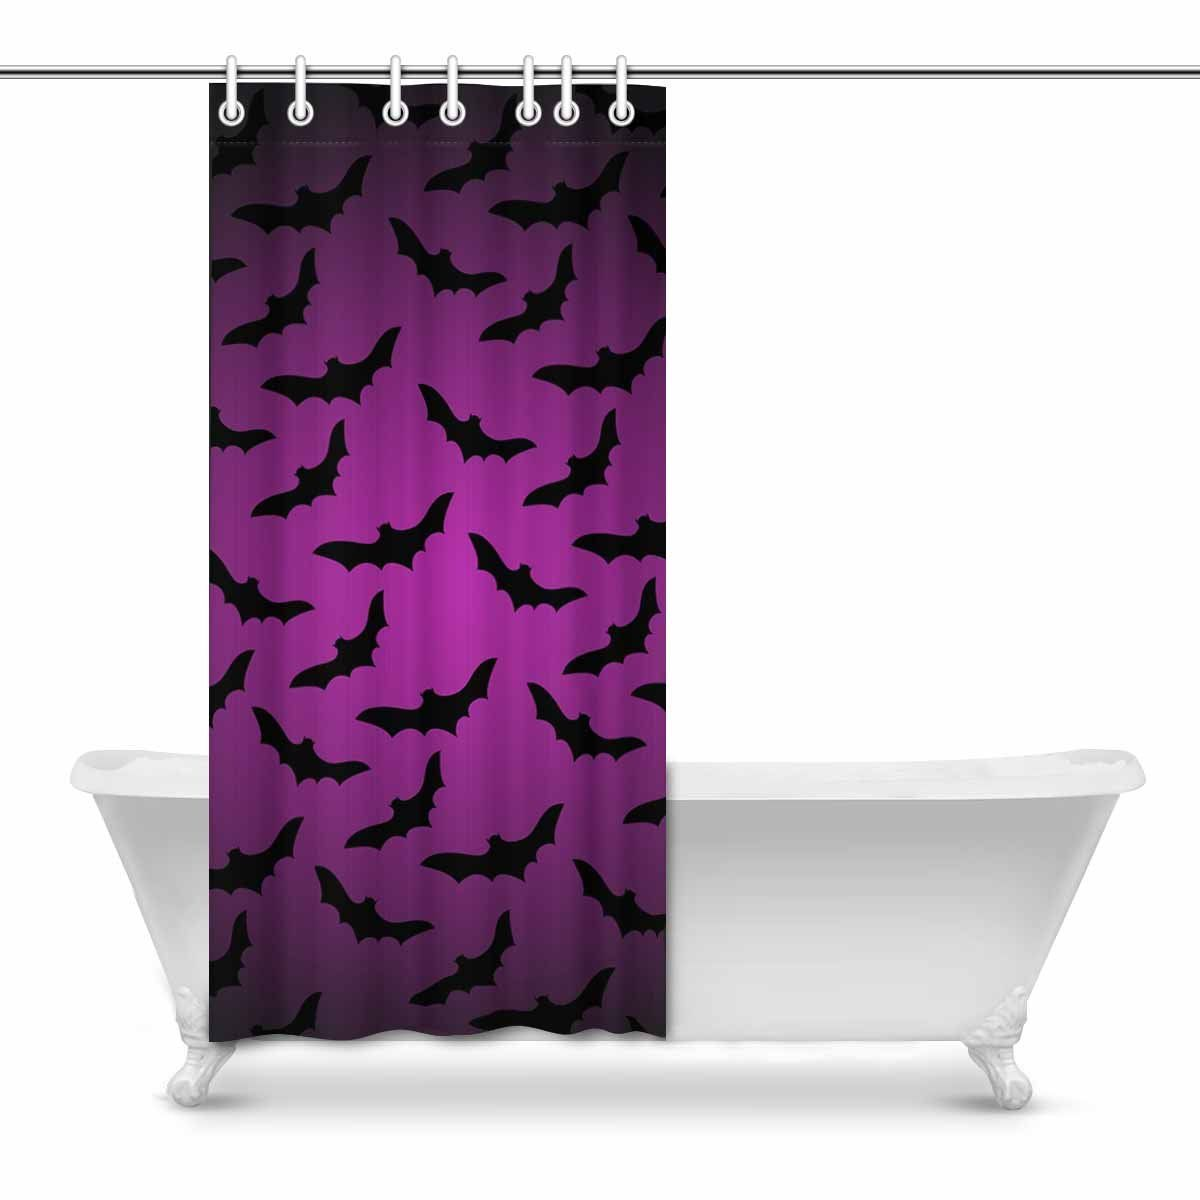 InterestPrint Halloween Dark Background With Bats Modern Art Fabric Shower Curtain 36 X 72 Inches Have A Look At This Excellent Product